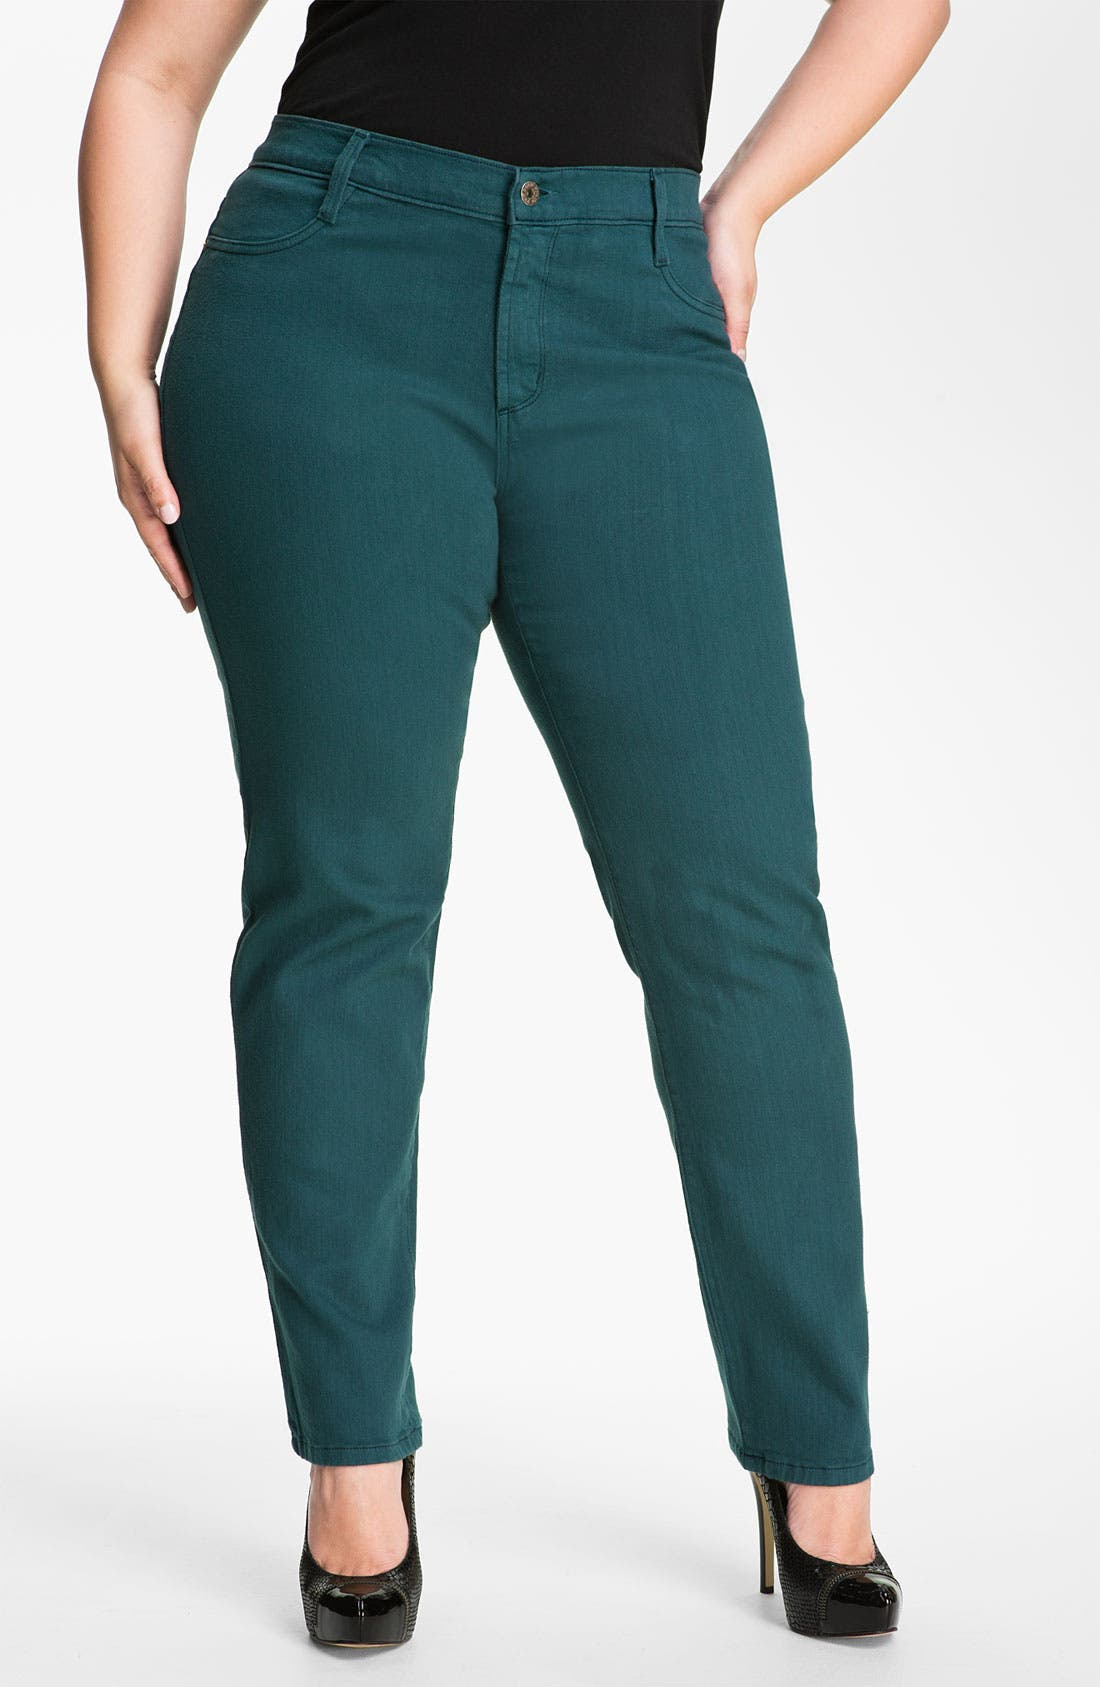 Alternate Image 1 Selected - James Jeans Stretch Denim Leggings (Plus)